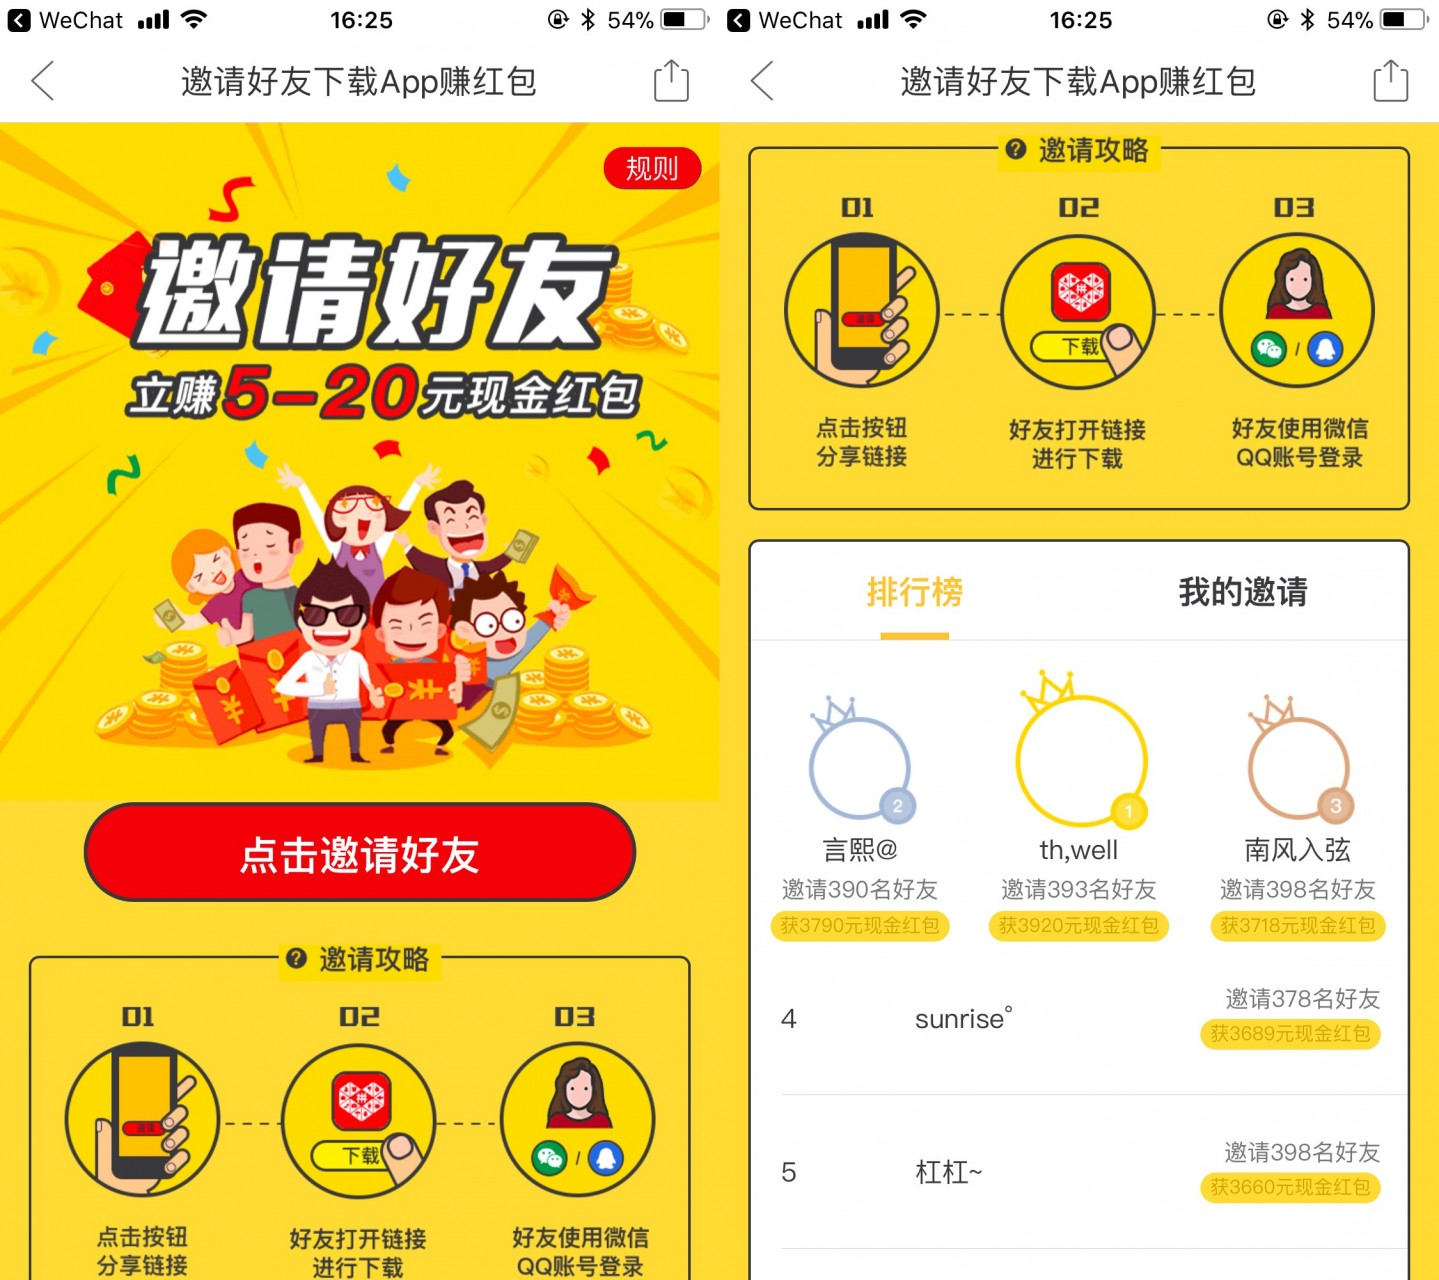 Can China's fastest growing e-commerce startup find similar success